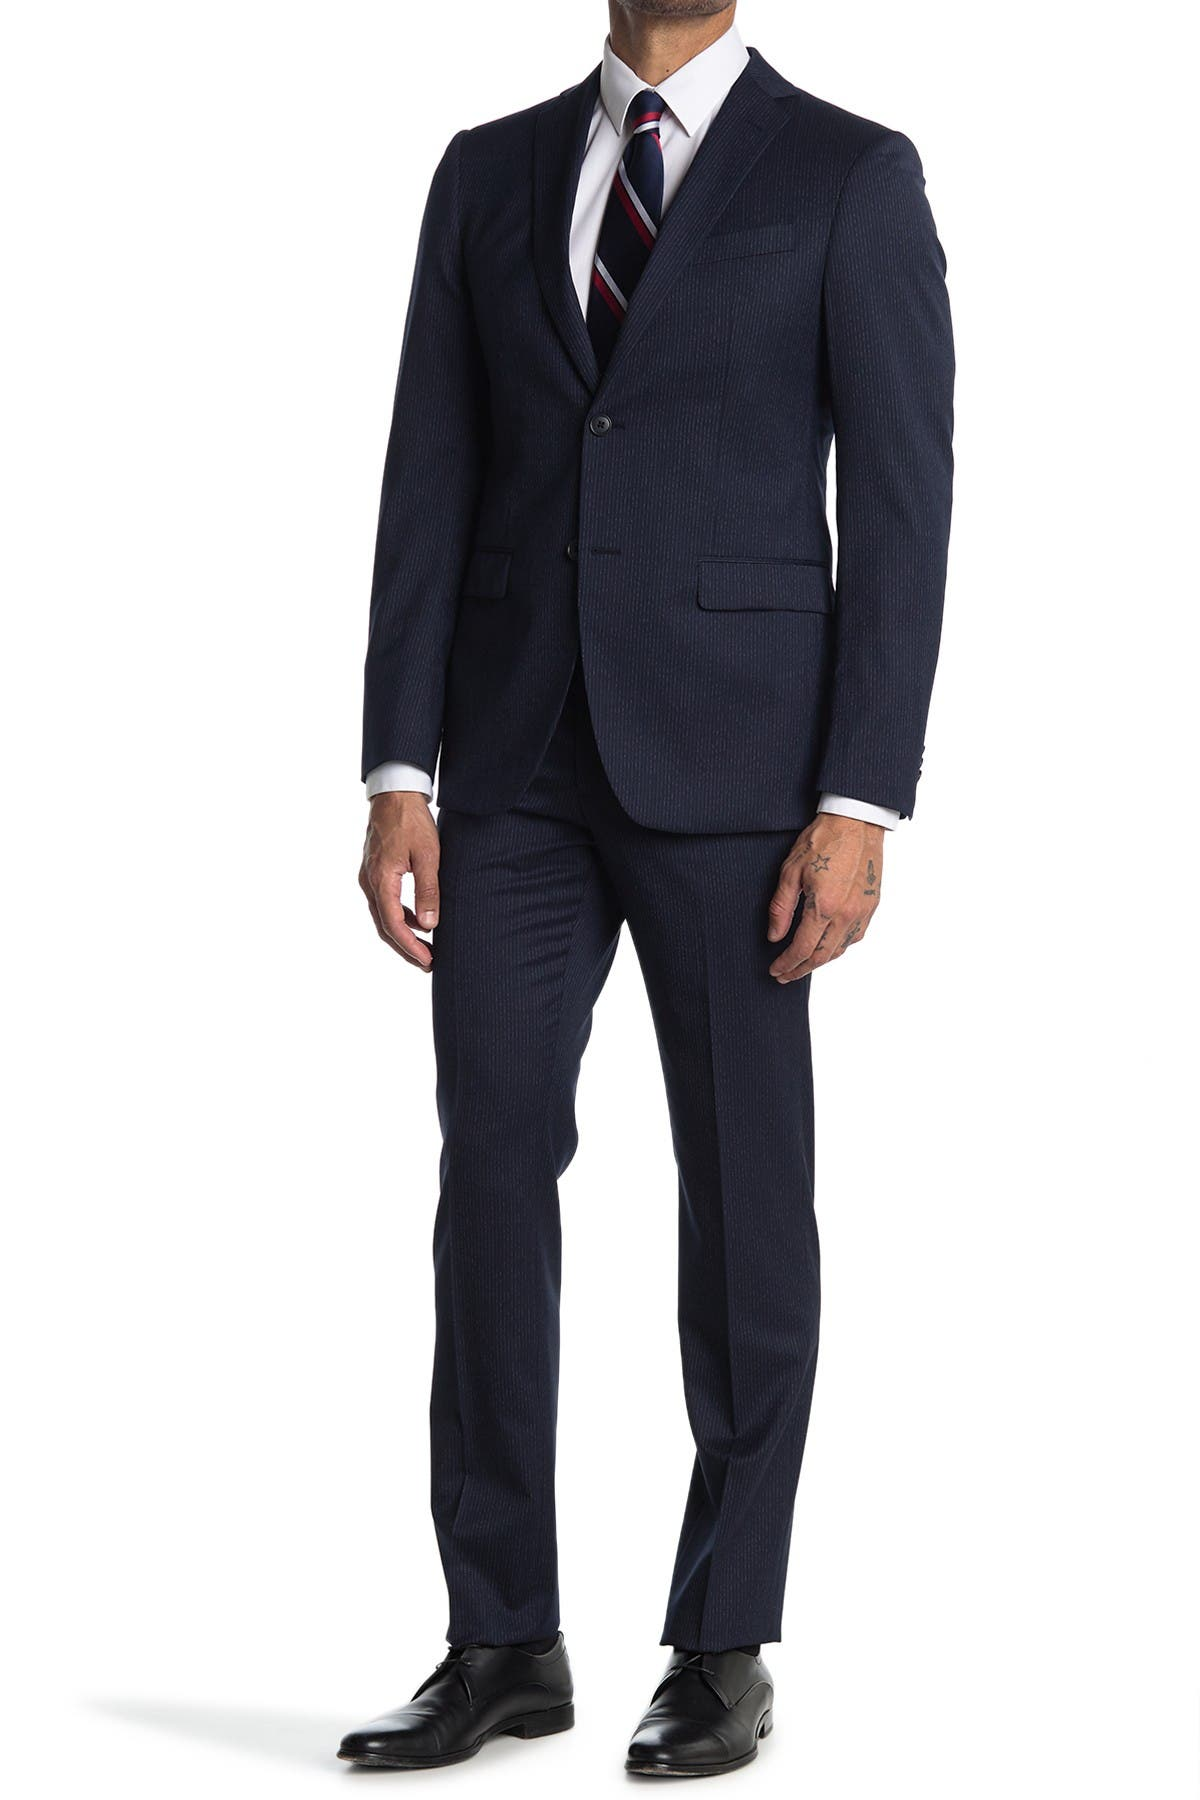 Image of John Varvatos Collection Nested Navy Solid Two Button Notch Lapel Wool Blend Suit